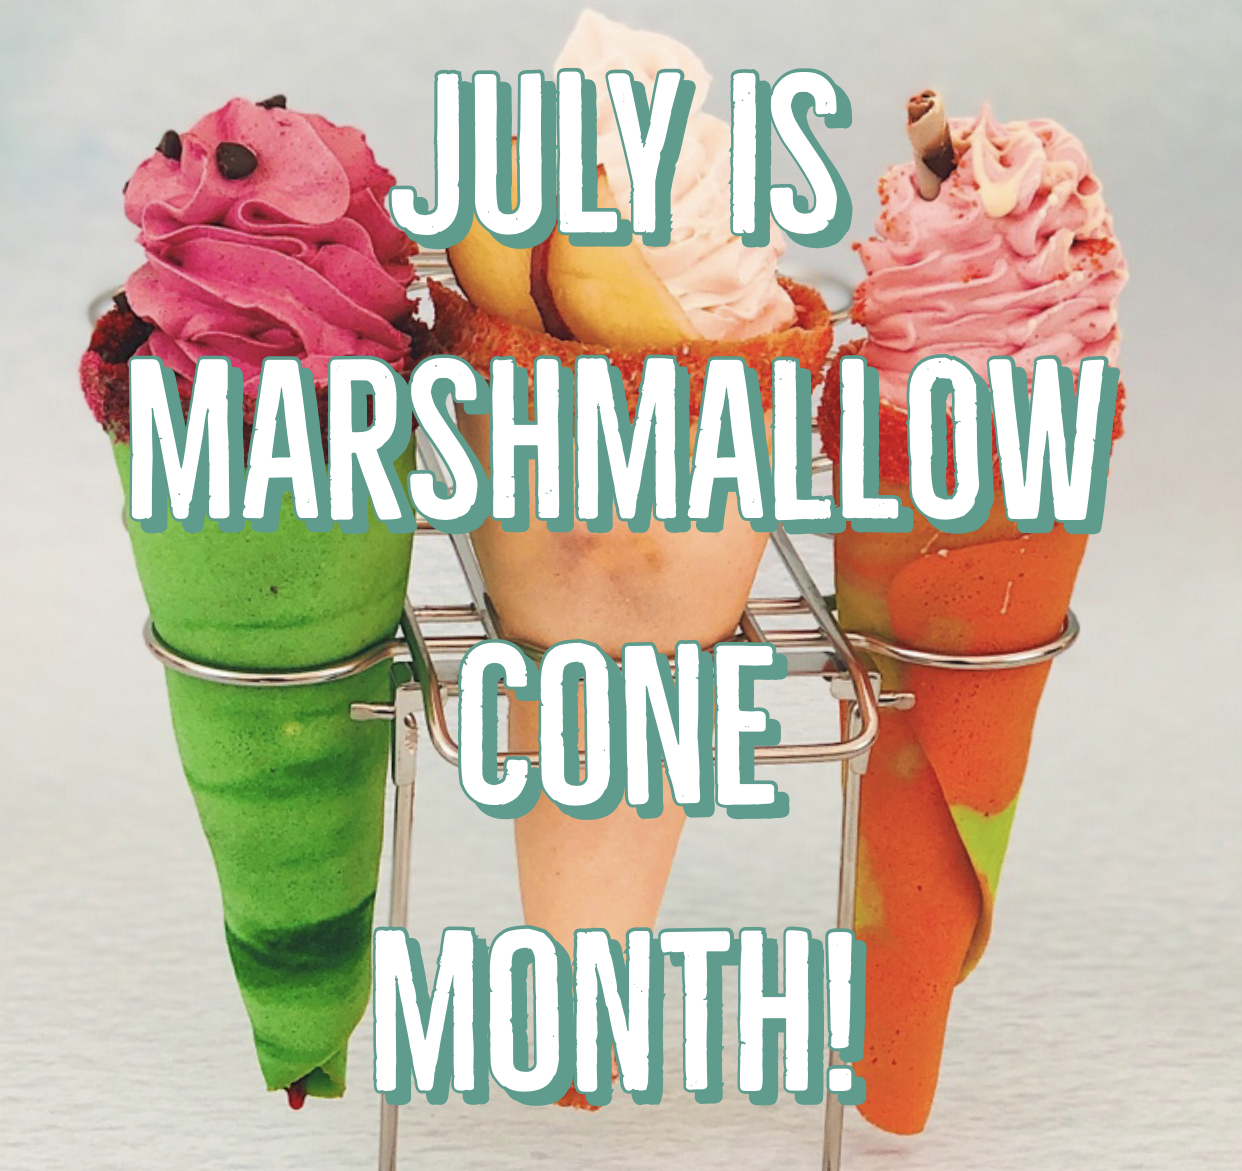 July - Marshmallow cones.jpg